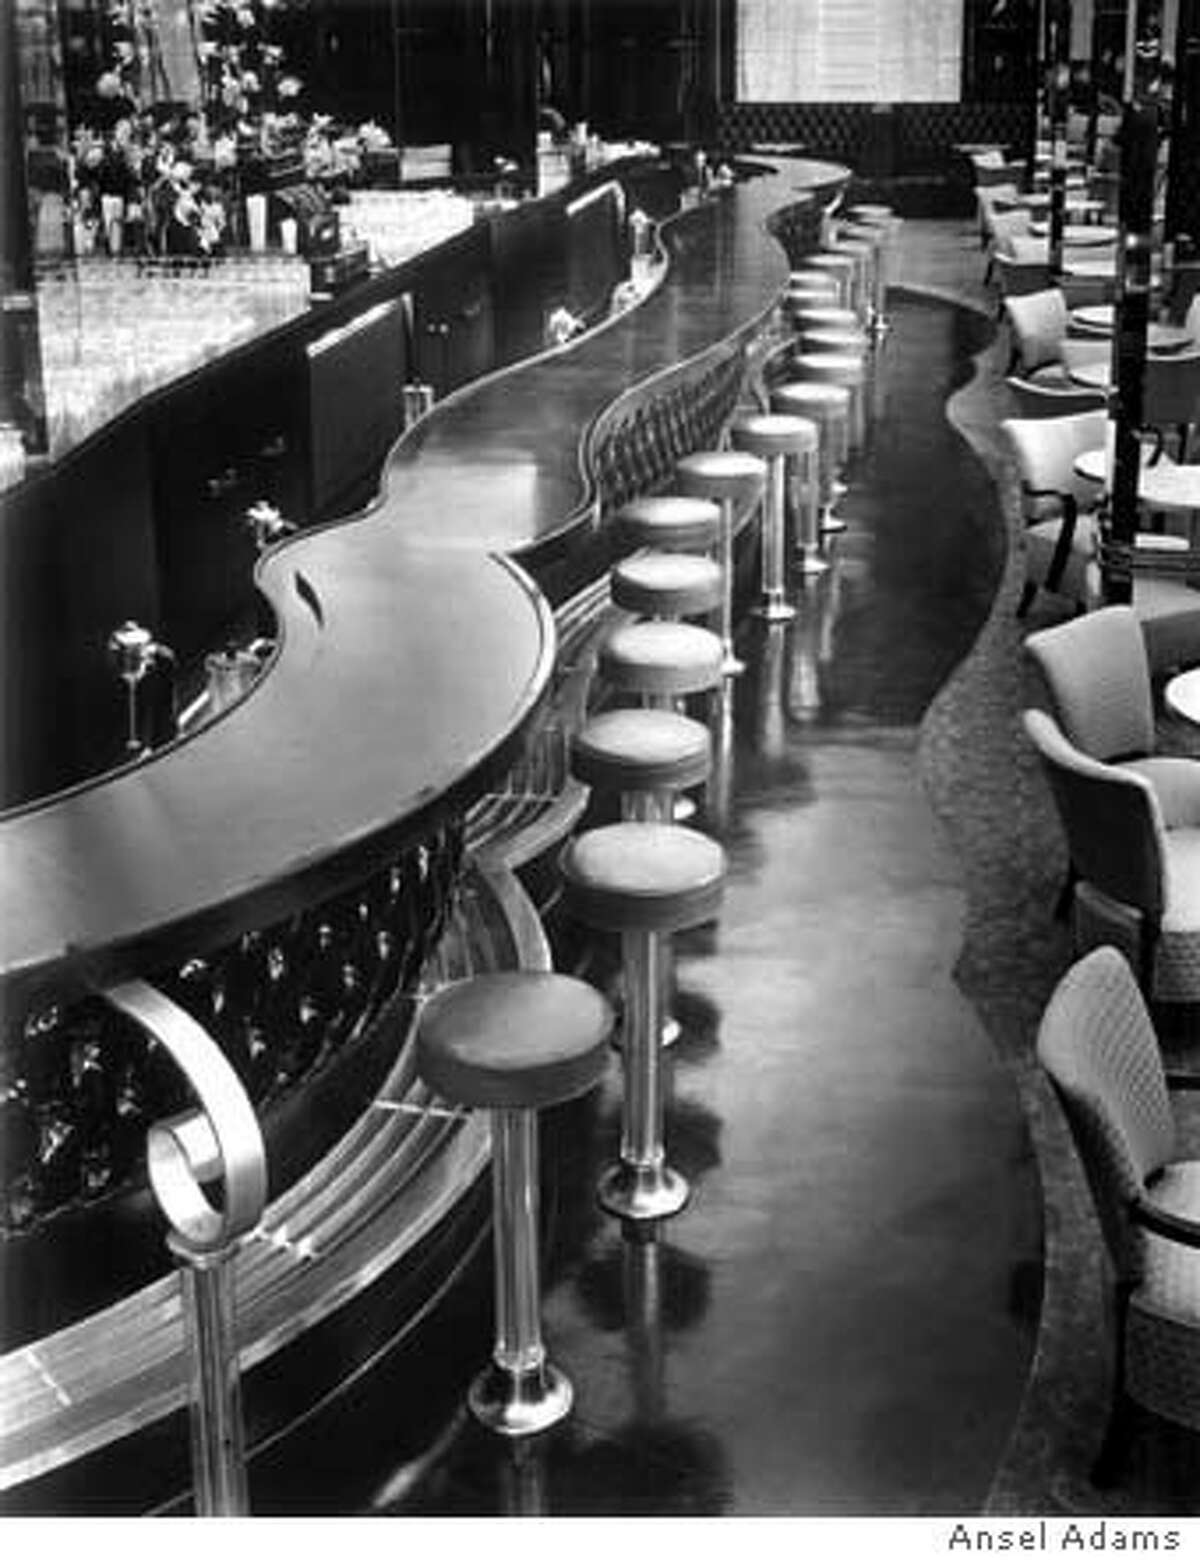 ADAMS20.jpg ANSEL ADAMS Photos OF THE ST. FRANCIS HOTEL's former PATENT LEATHER BAR AND ORCHIR ROOM.